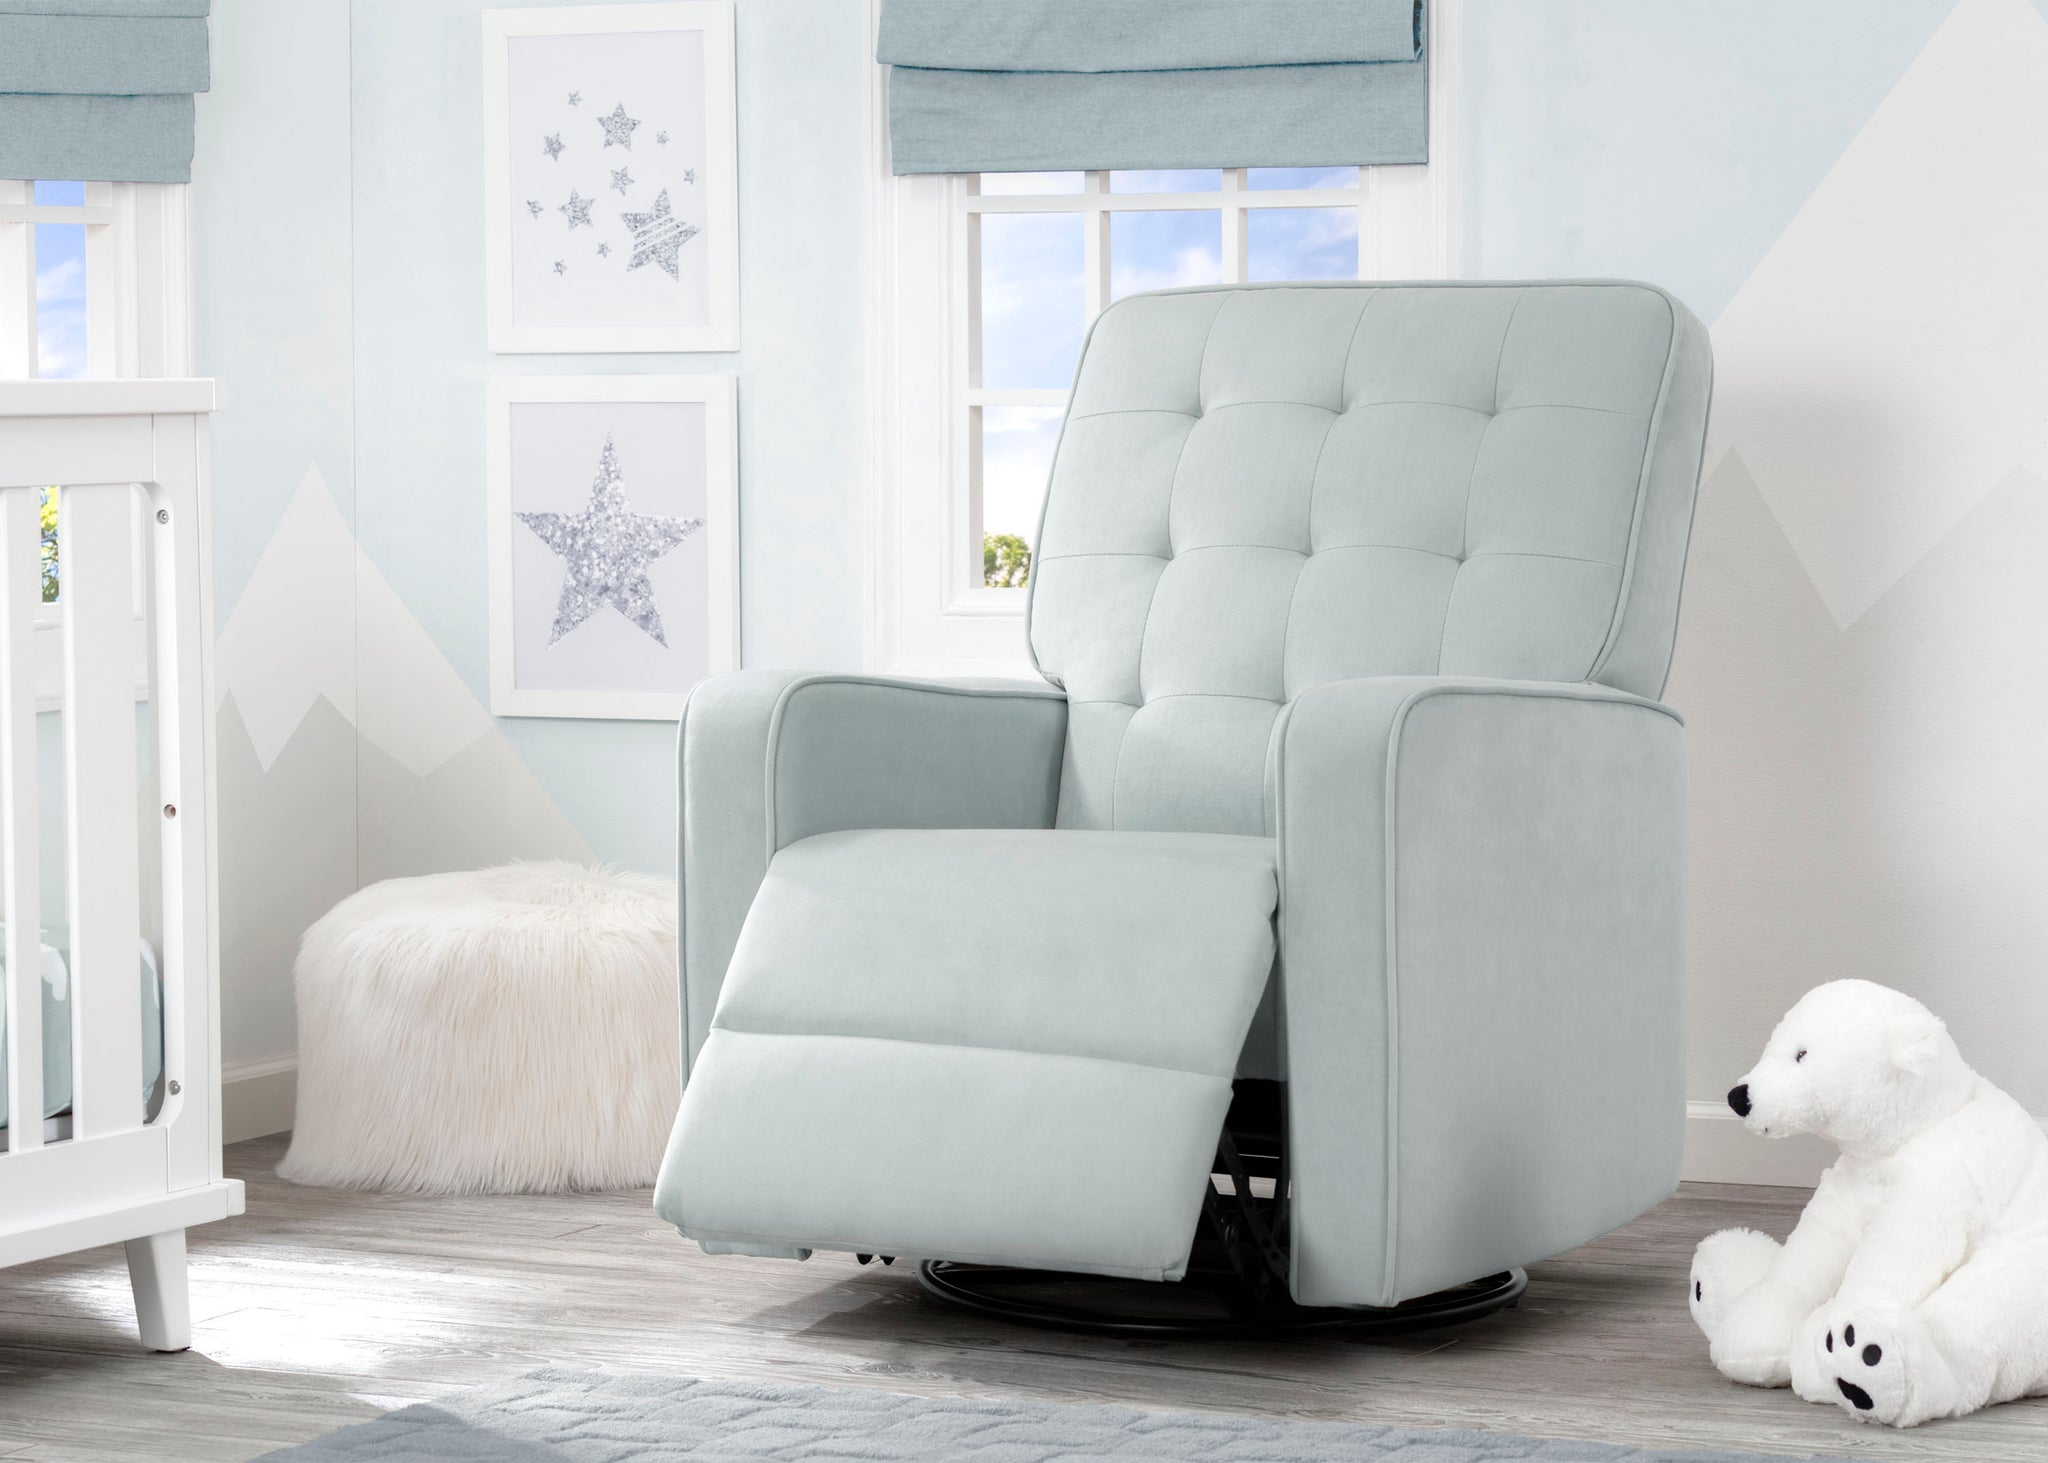 Delta Children Mist (934) Graham Nursery Glider Swivel Recliner, Room Reclined View